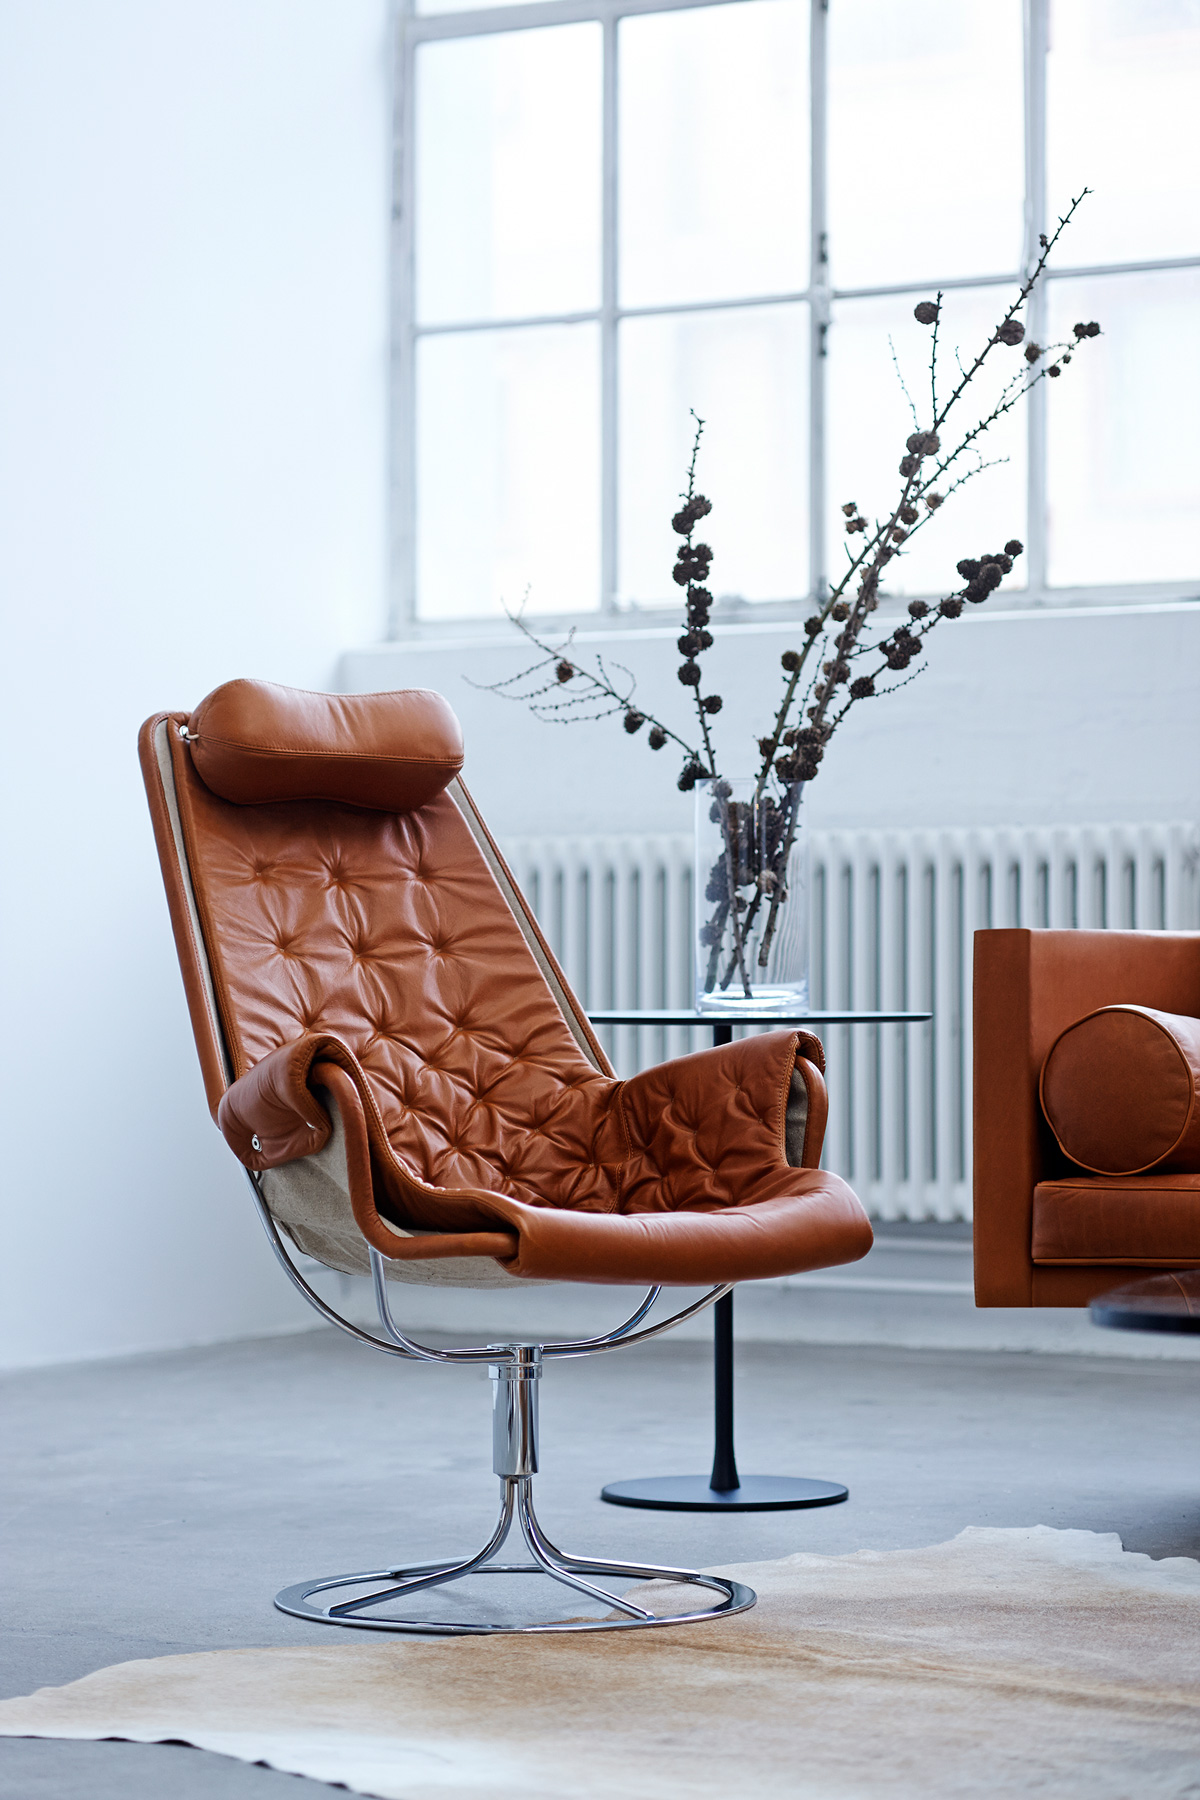 DUX Jetson Chair and Ritzy Sofa